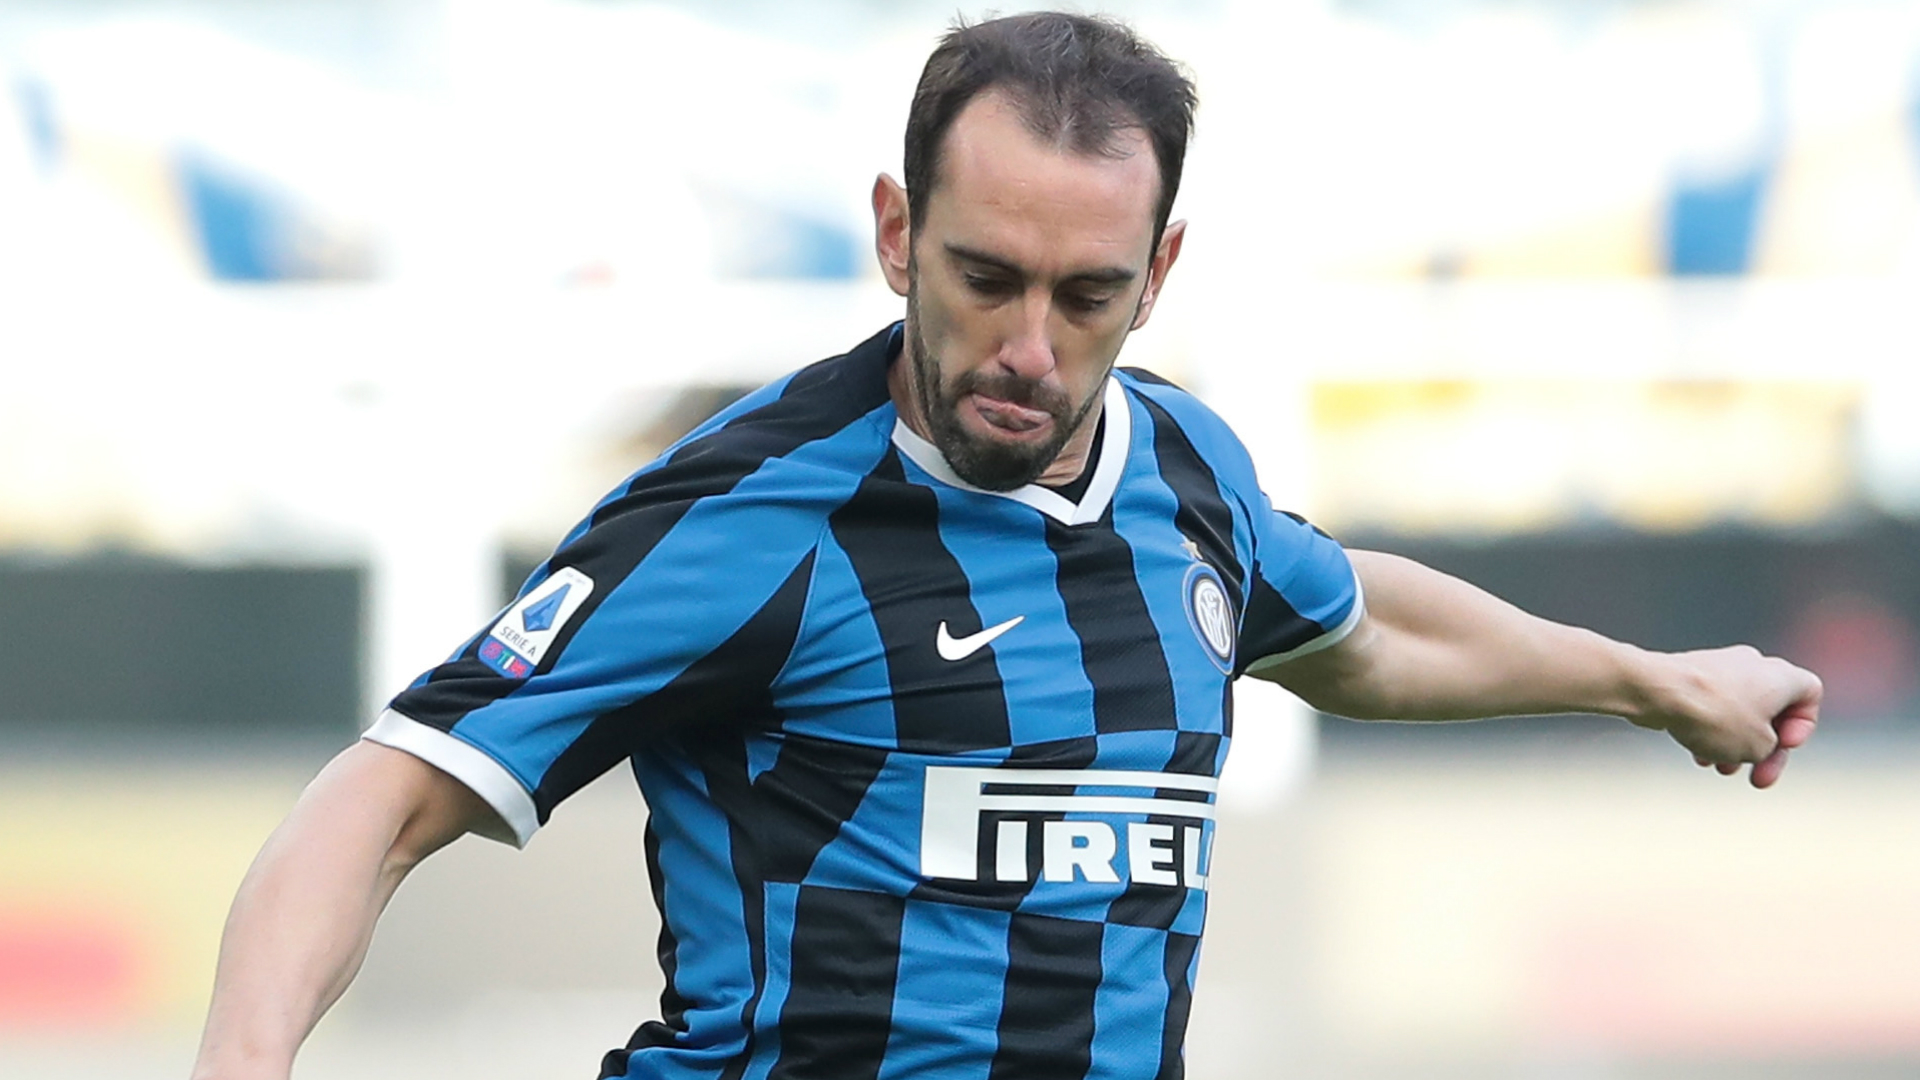 Inter defender Diego Godin discussed Monday's rallying victory at home to Torino after scoring his first Nerazzurri goal.